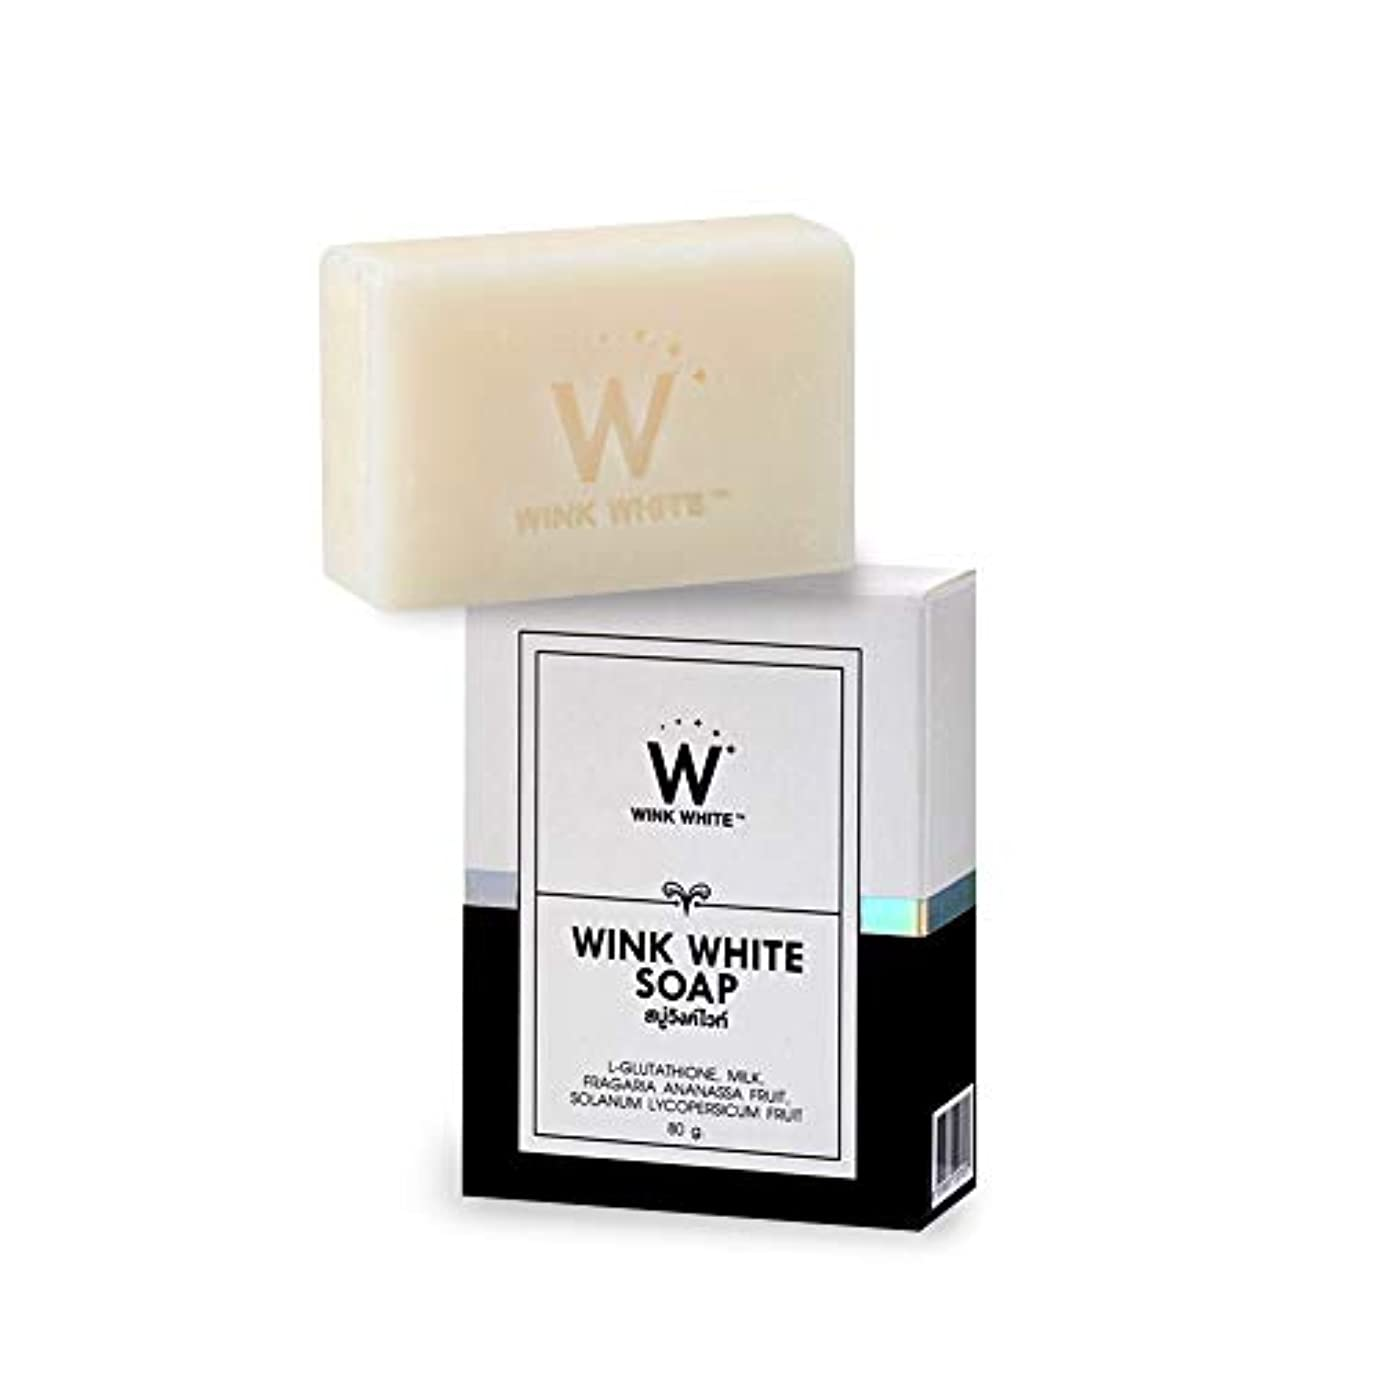 診断する受取人脱走Mangos Teen White Soap Base Wink White Soap Gluta Pure Skin Body Whitening Strawberry for Whitening Skin All Natural...